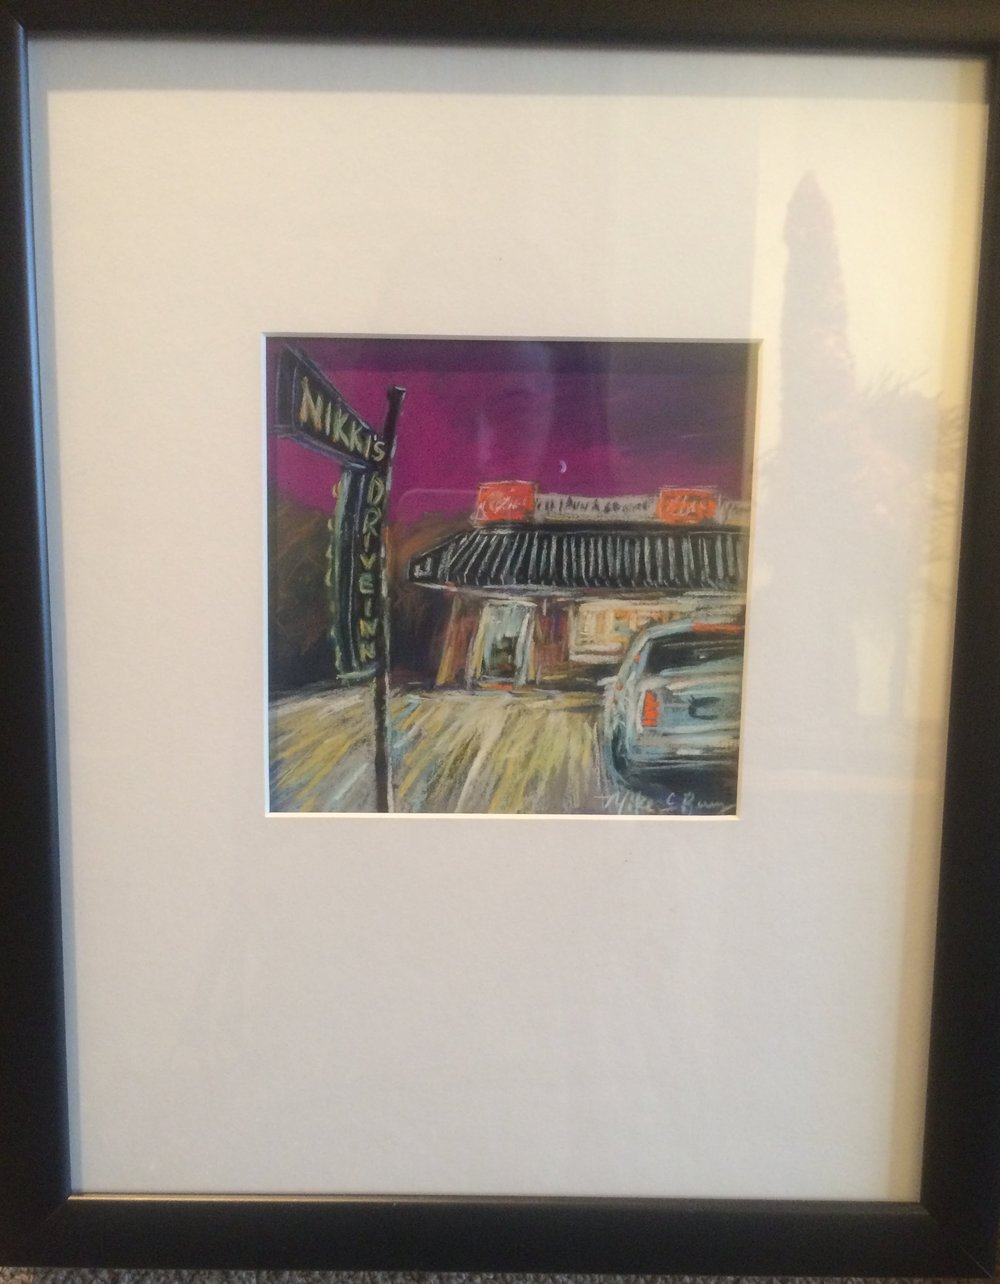 "Item #130    Mike Berry    Nikki's Drive-In   Pastel, 12 x 15       River Gallery – Chattanooga, TN   Opening Bid $220    Minimum Raise $10         Mike C. Berry  is a versatile painter who works in pastels, oils and acrylics. His colorful and vibrant compositions often bending and twisting the cityscape have become his easily identifiable style. With his use of pure color and gestural brushstrokes, Wolf Kahn and other expressionists have heavily influenced his work.     ""My entire artistic style is reminiscent of my own chaotic life and that combined with my fascination of twisted perspectives and dramatic lighting, and sometimes with a sprinkling of nostalgia, lends itself to the use of vivid color and bold bravado brushwork. With each work, I attempt to present fresh perspectives with the use of energized brushwork, and to capture the essence of a particular location or emotion through the exploration of vibrant color."""